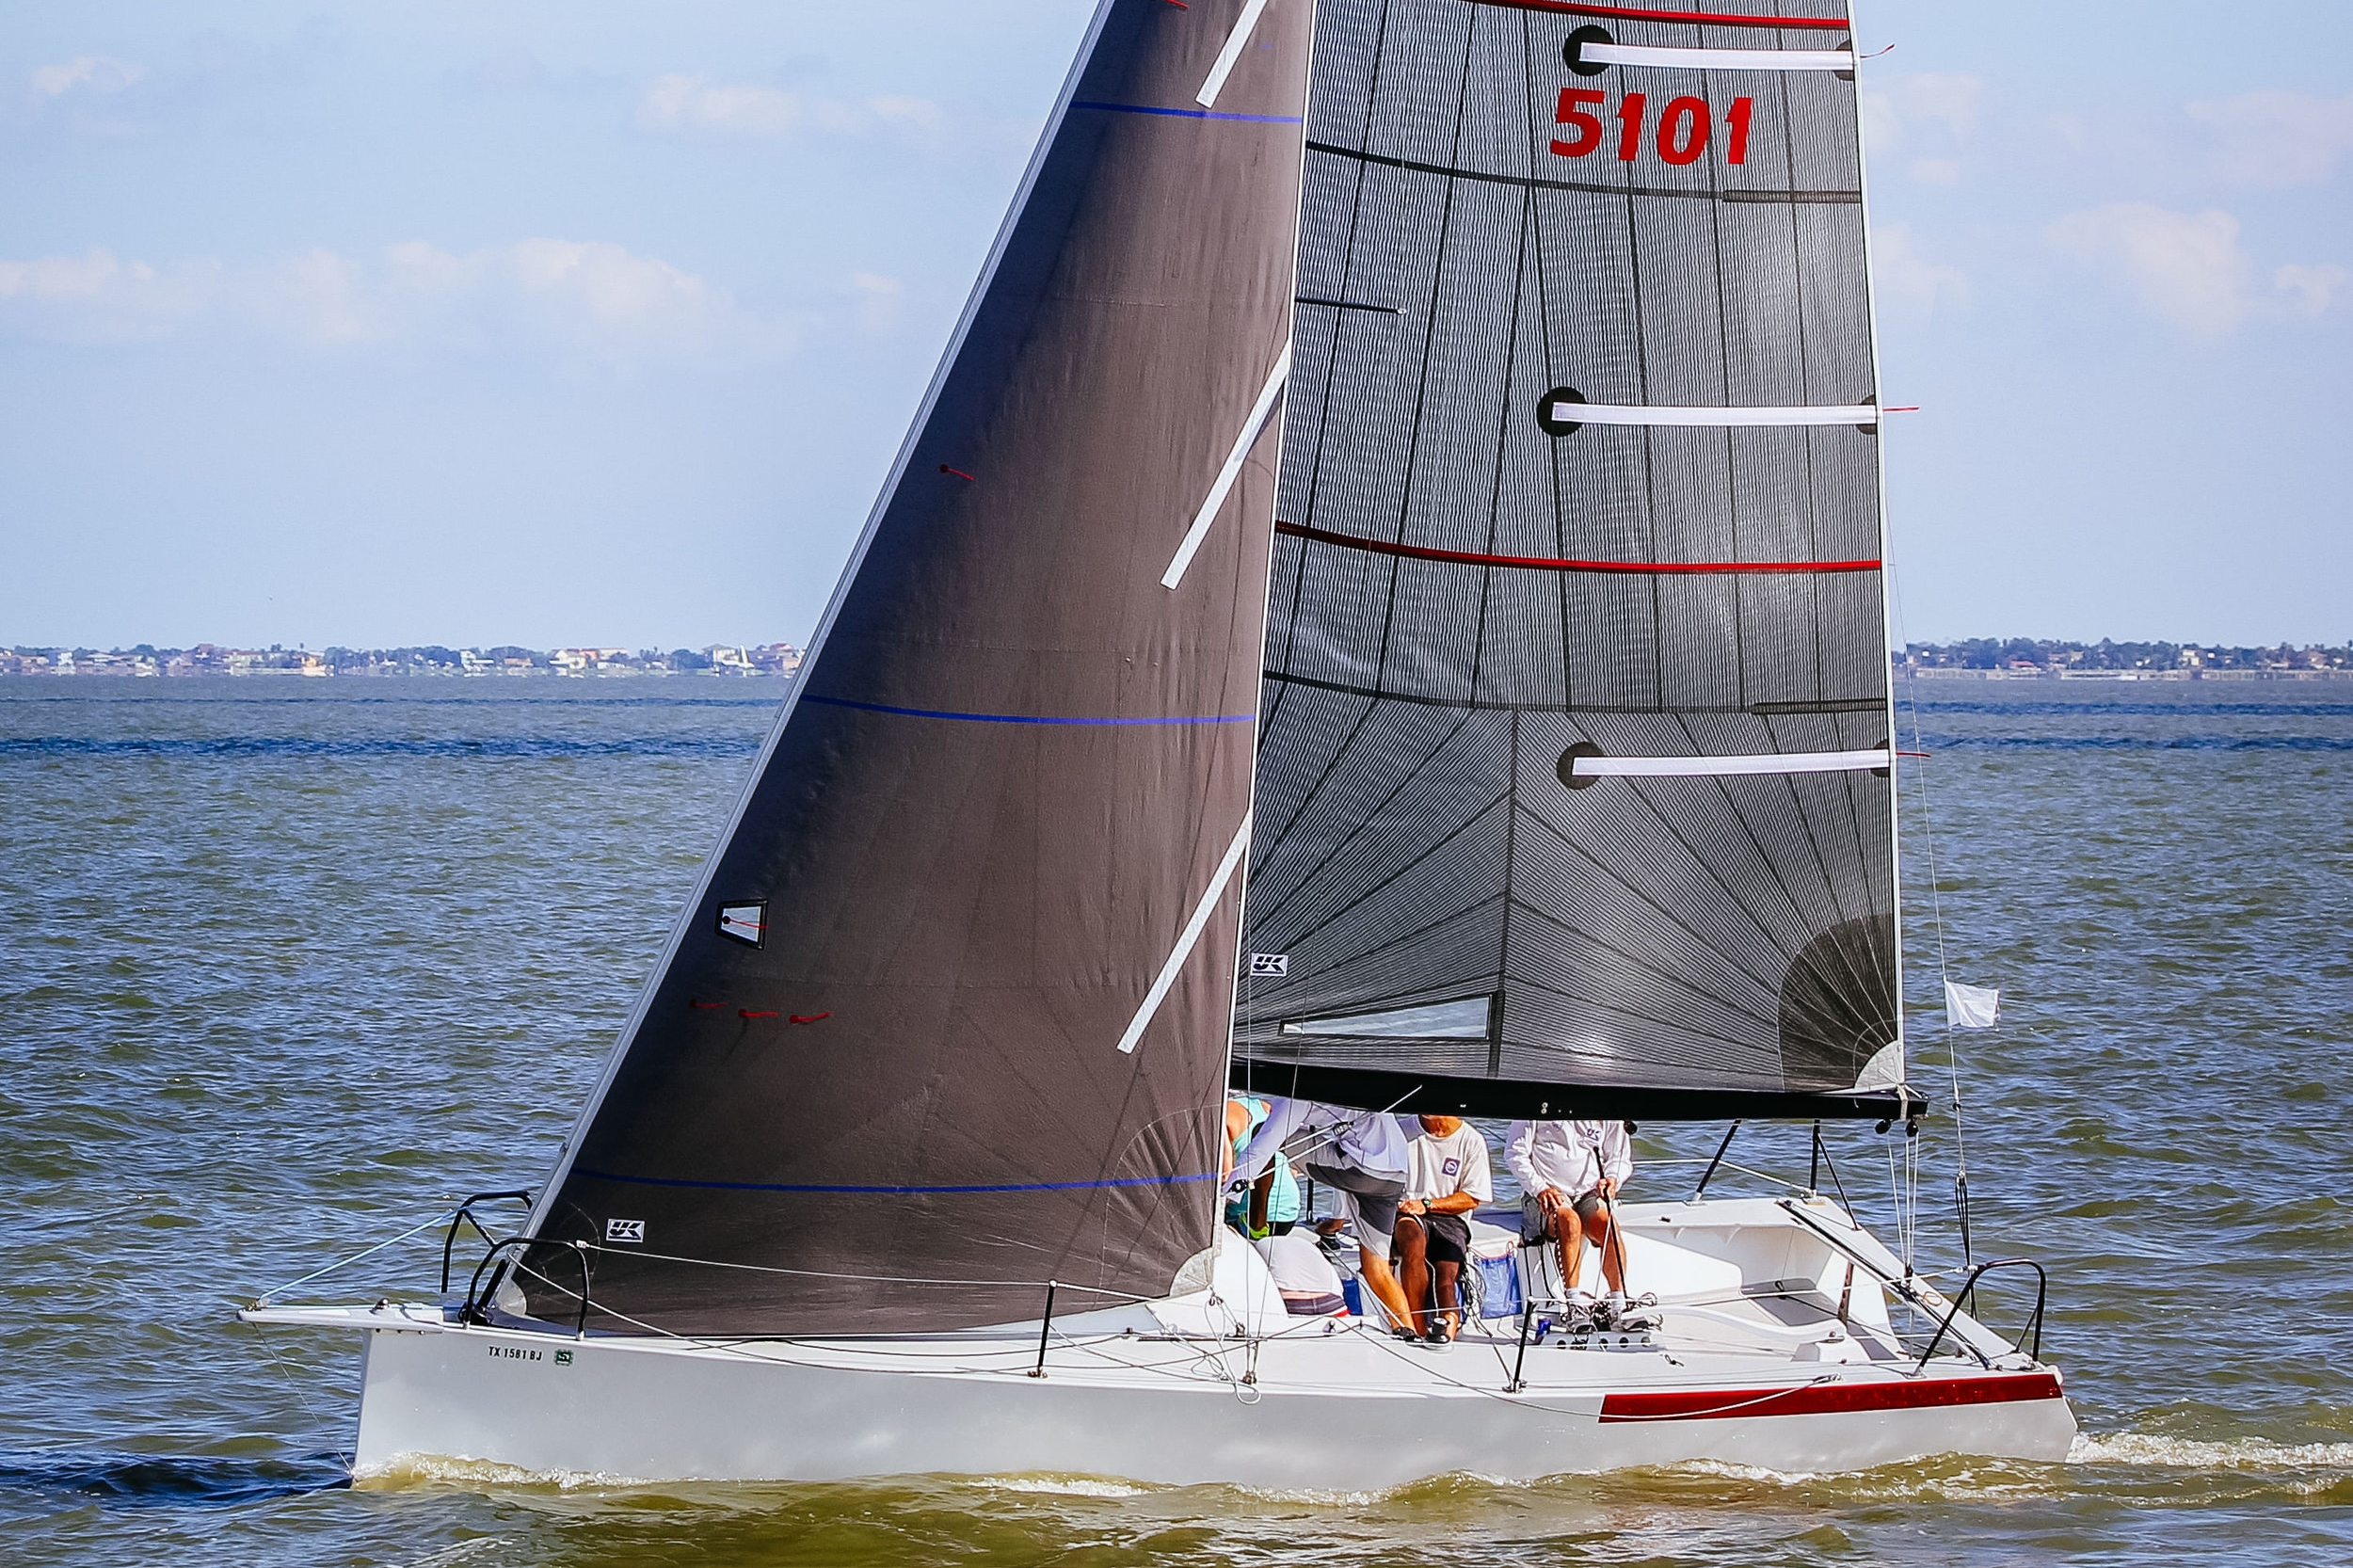 Radial Carbon Laminate   Description:  Tri-Radial panel layout   Construction:   Long narrow panels radiating from the three corners that attempt to follow the loadpaths between the corners. The straight fibers in each panel are discontinu-ous because they are cut on every seam unlike our X-Drive and Titanium sails.   Material:  Warp-oriented carbon laminates   Shape Stability:  ★★★★   Shape after 500 hours:  Circa 70%   Price:  $$$$